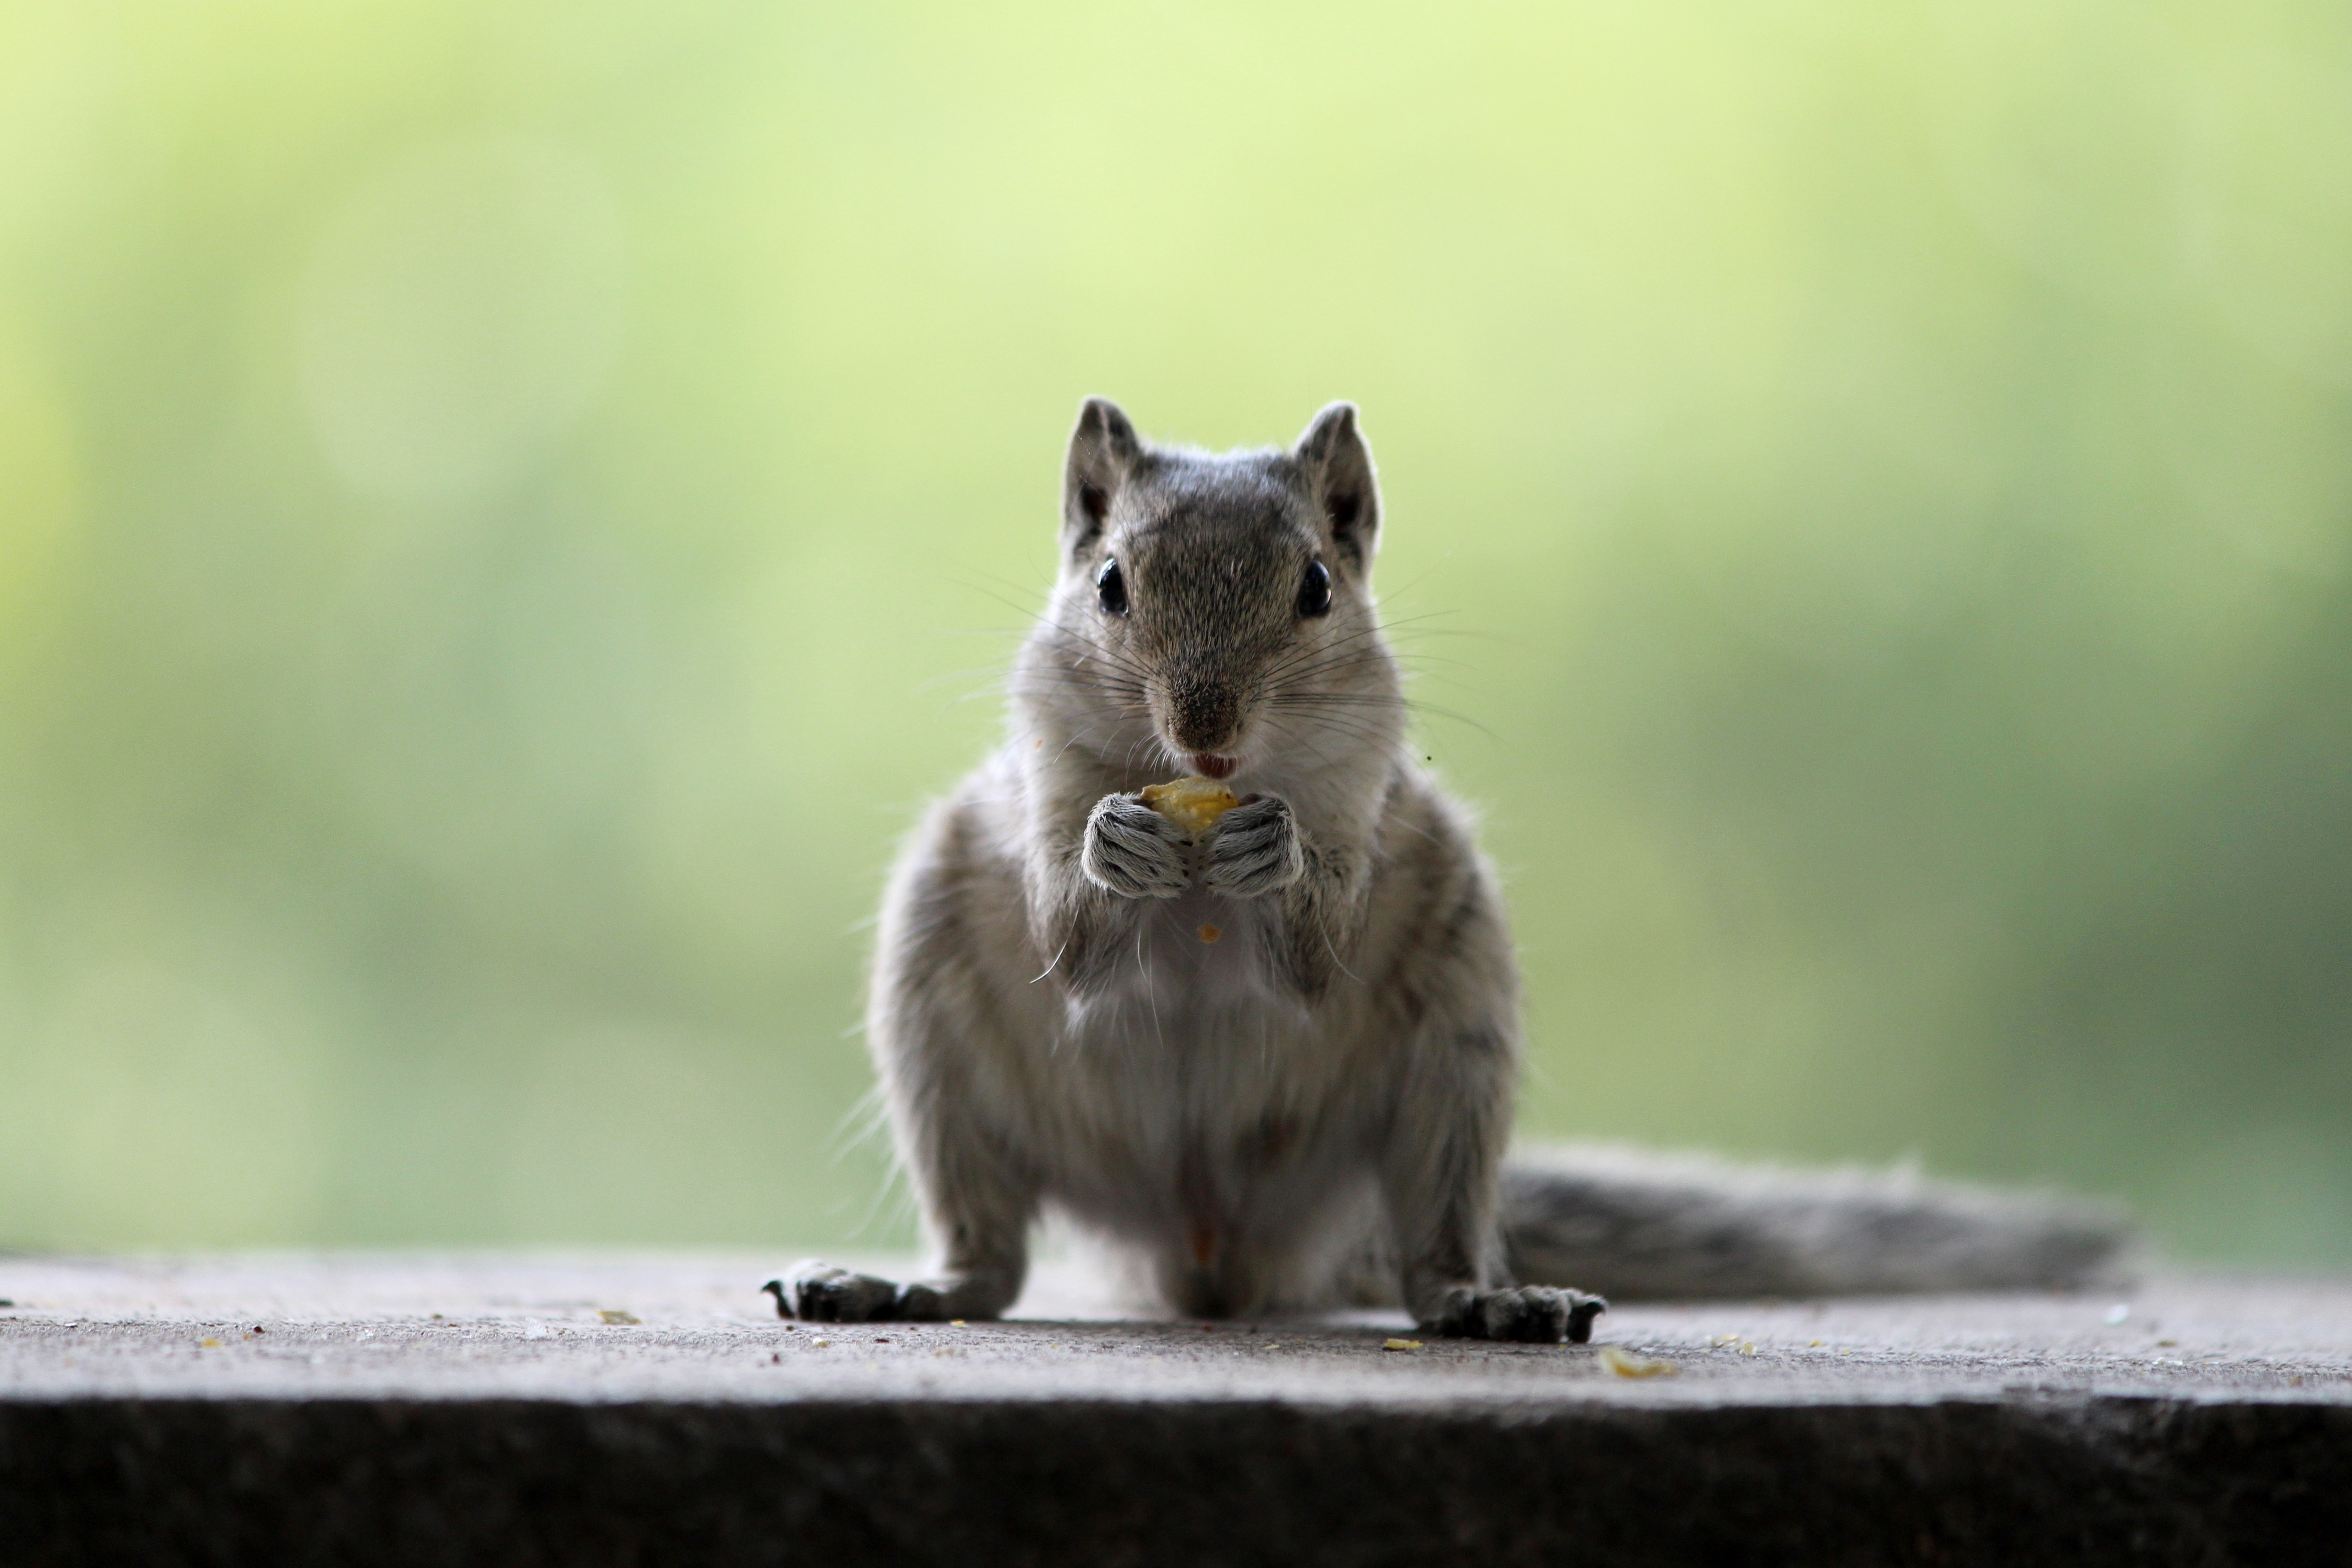 squirrel-eating-nut-looking-into-camera